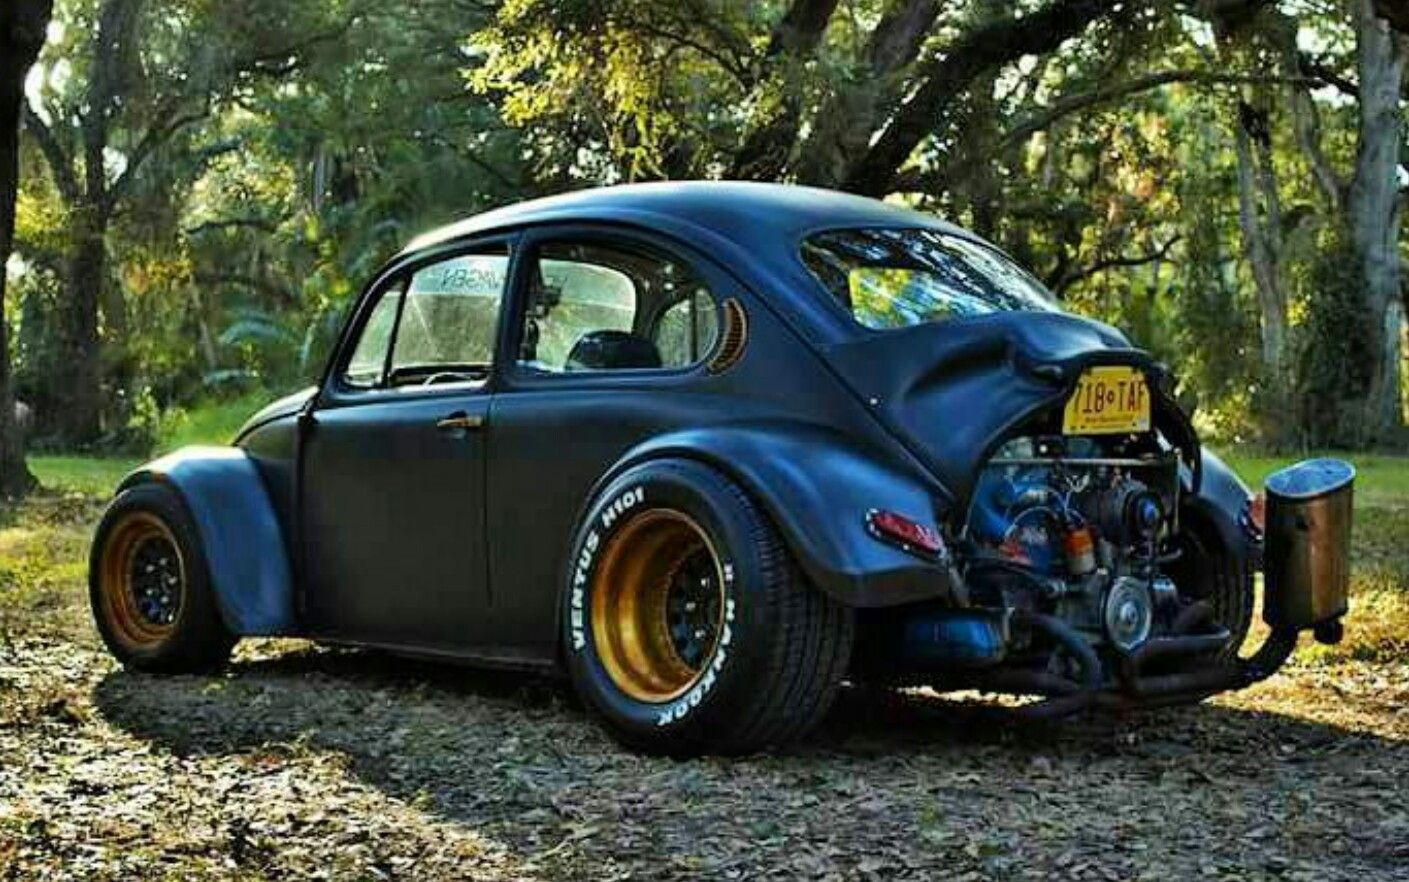 vw bug baja sport | vw beetle / baja bug | pinterest | vw, beetles